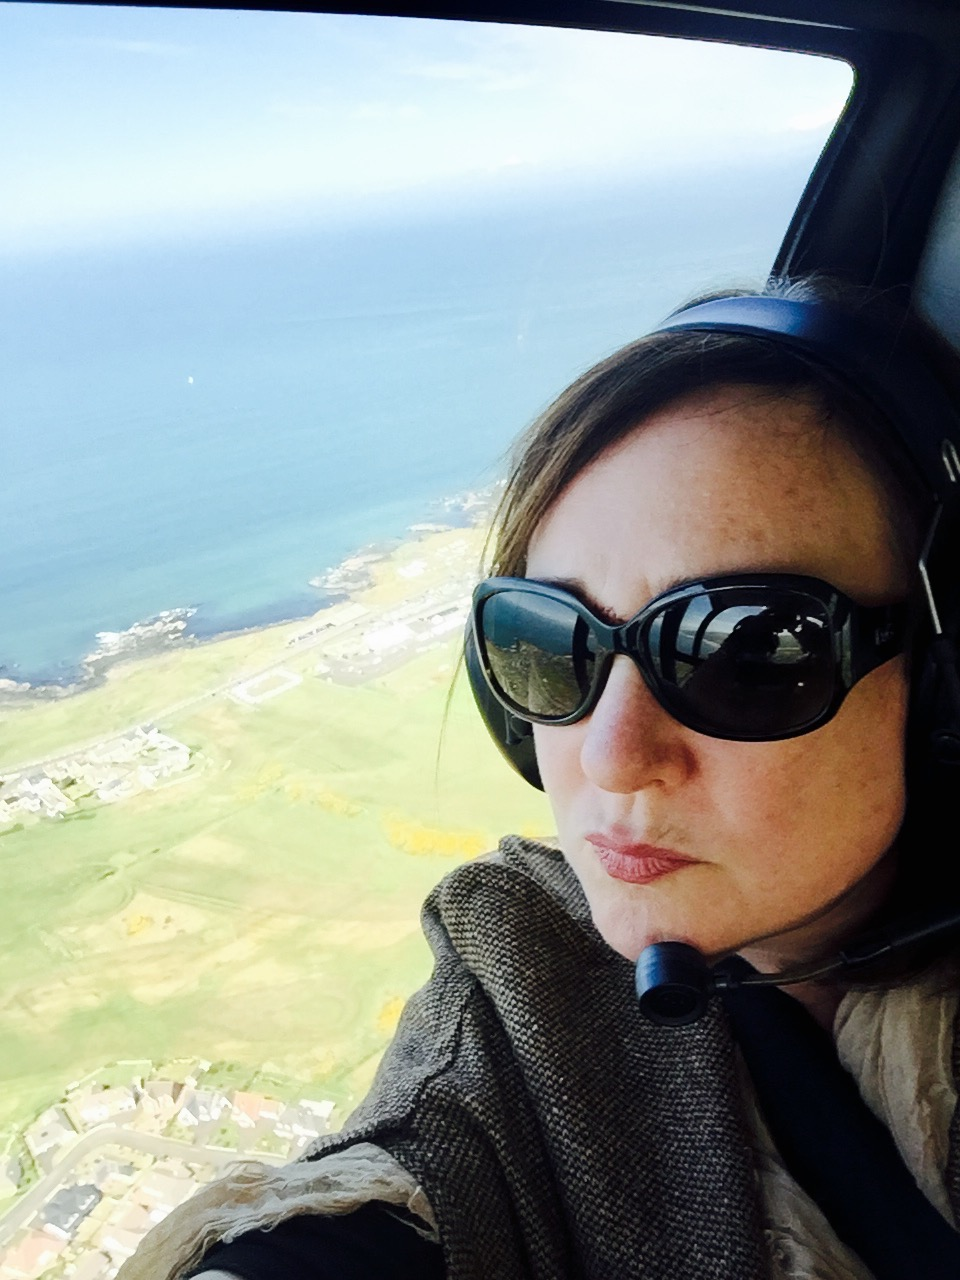 Helicopter Tour of the amazing Causeway Coast - 2016